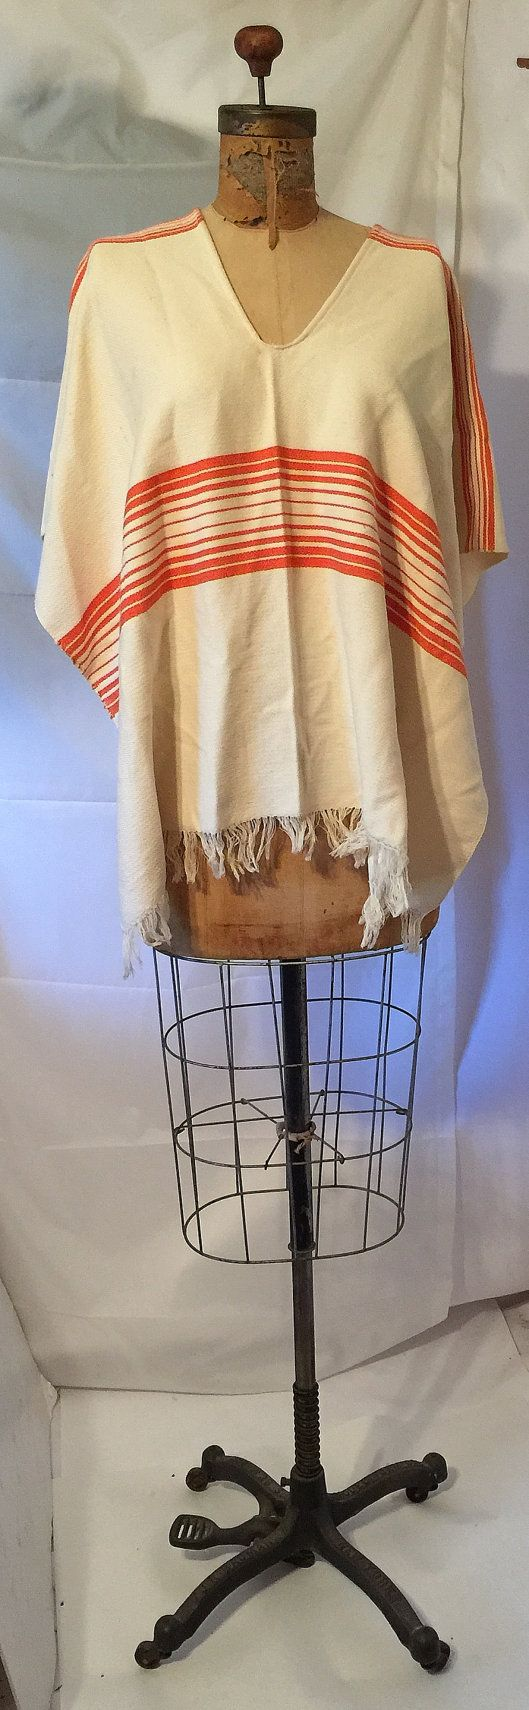 Presidents Day Sale Cool Hand Woven Cotton Ethnic Poncho South American Top-Shirt-One Size-Hippie-Bohemian